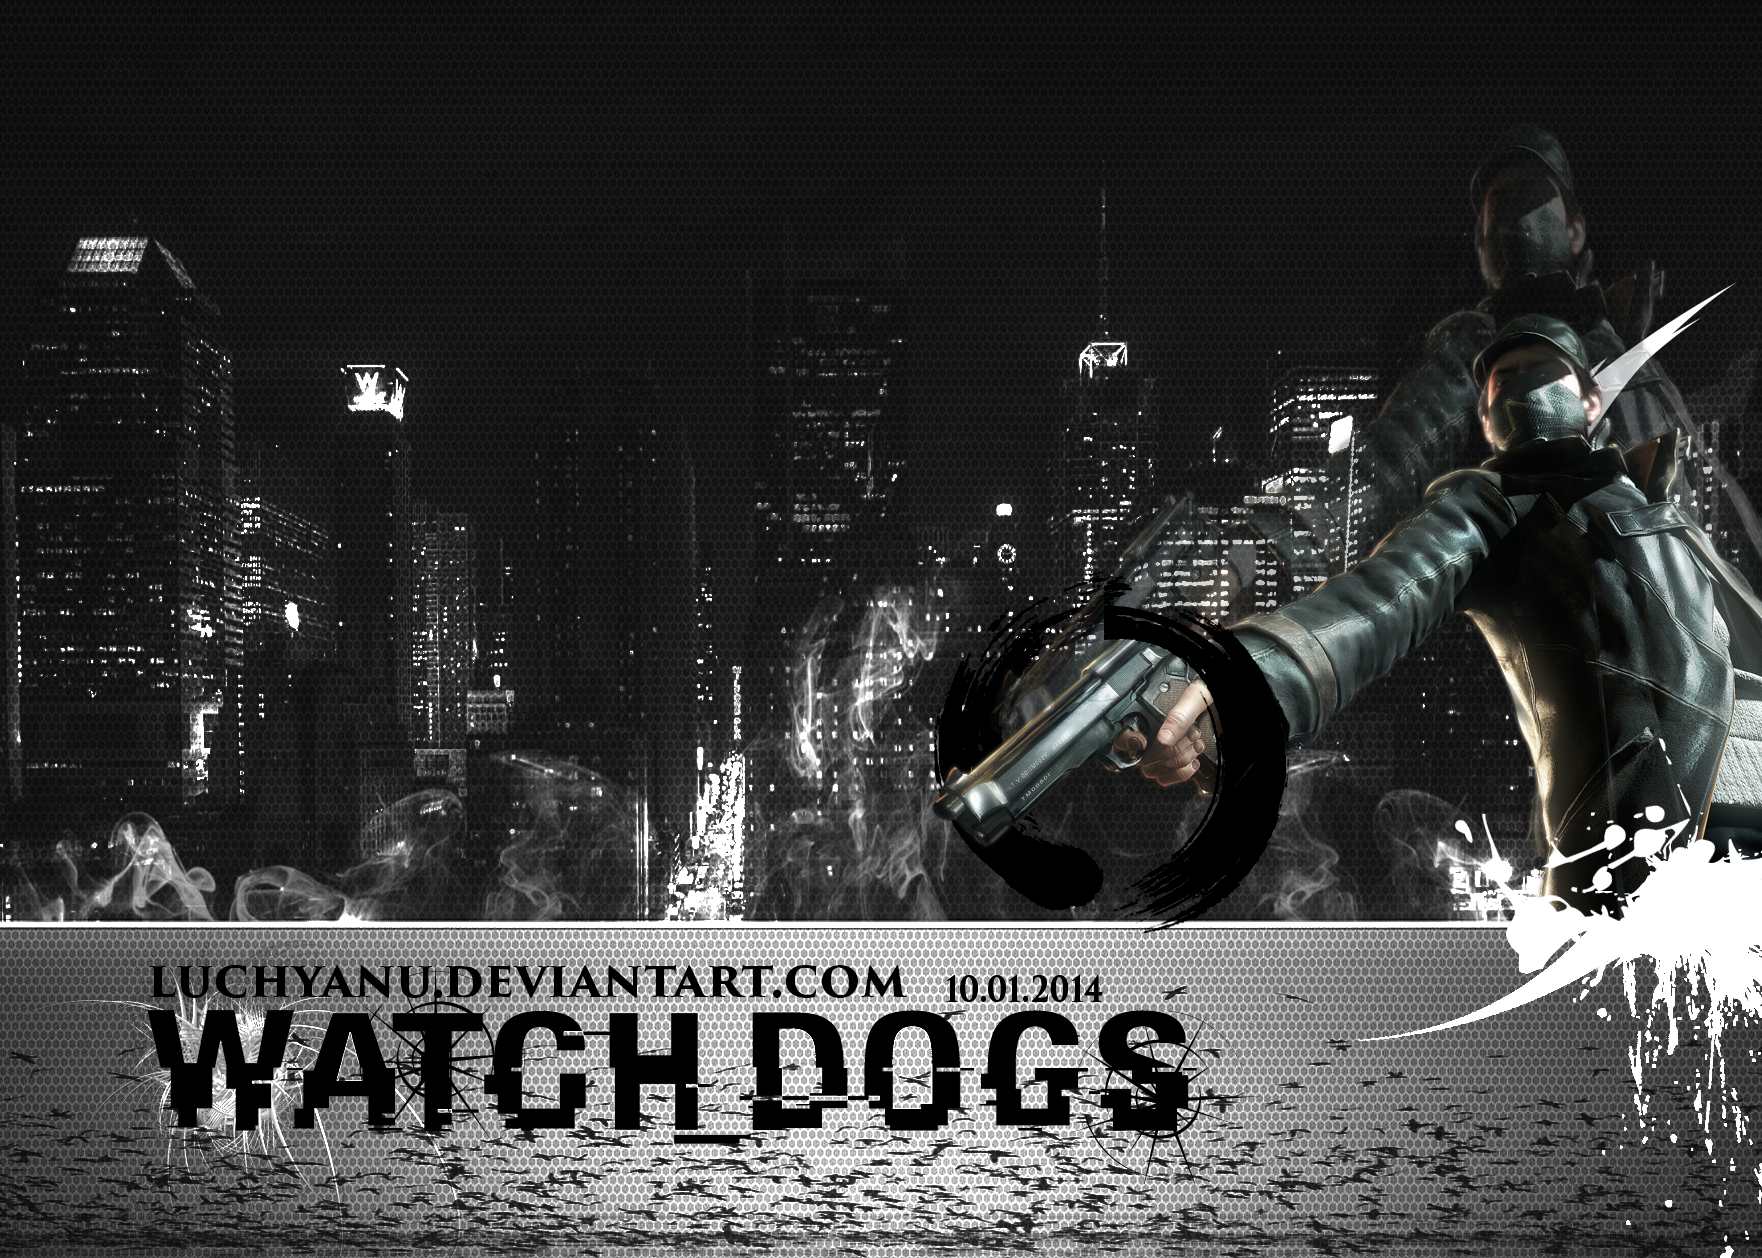 Watchdogs HD Wallpapers, 2.5 Mb, Sheba Hamilton